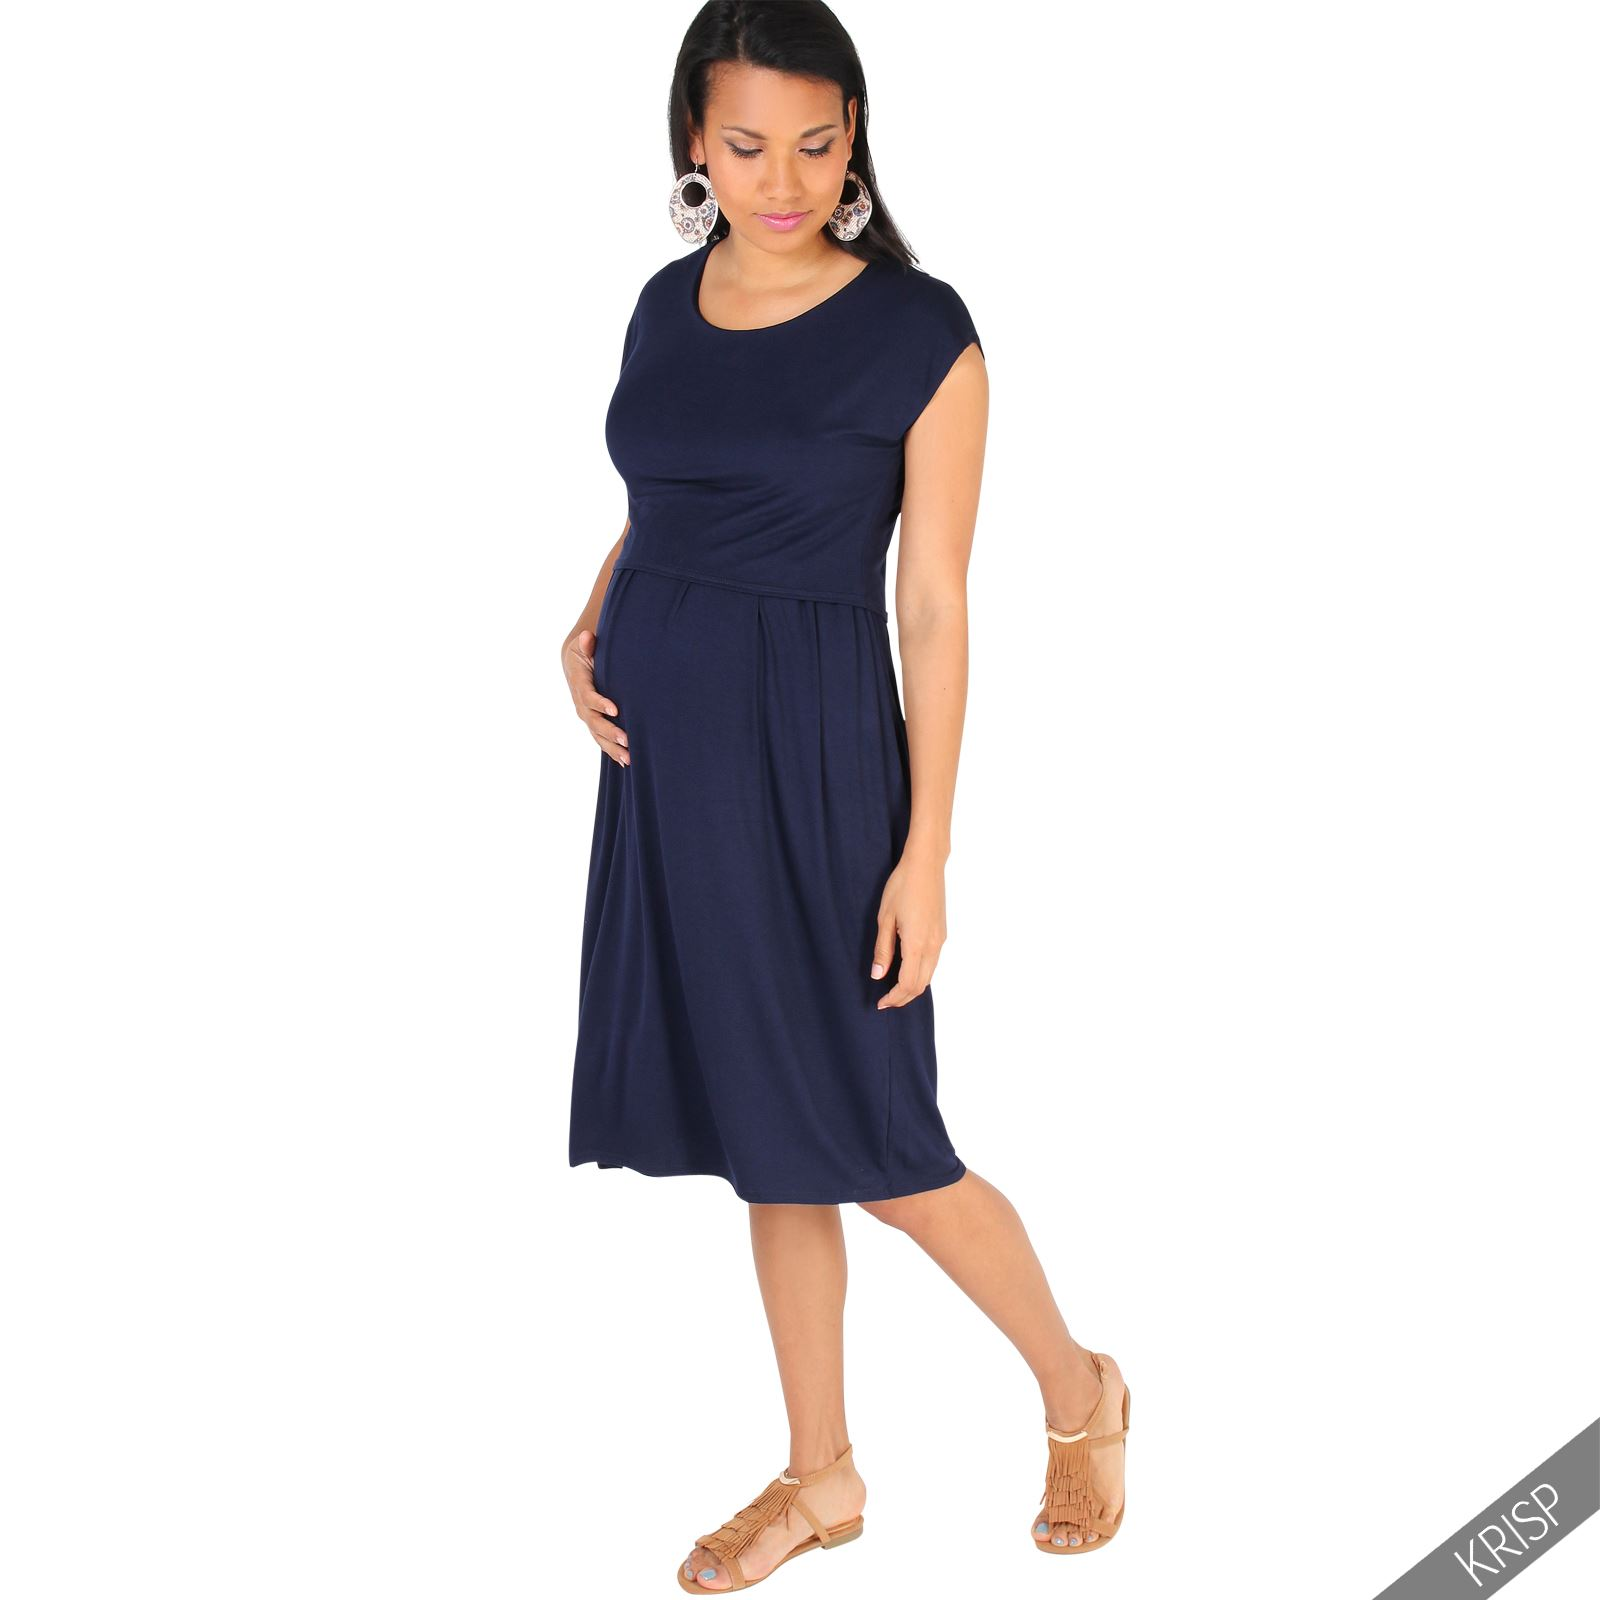 Whether you're looking for professional or casual plus size maternity clothes you'll find the look you want here. This assortment include jersey tops, scoop neck dresses, bermuda shorts and khaki pants. Stock up on several styles that are both trendy and affordable.